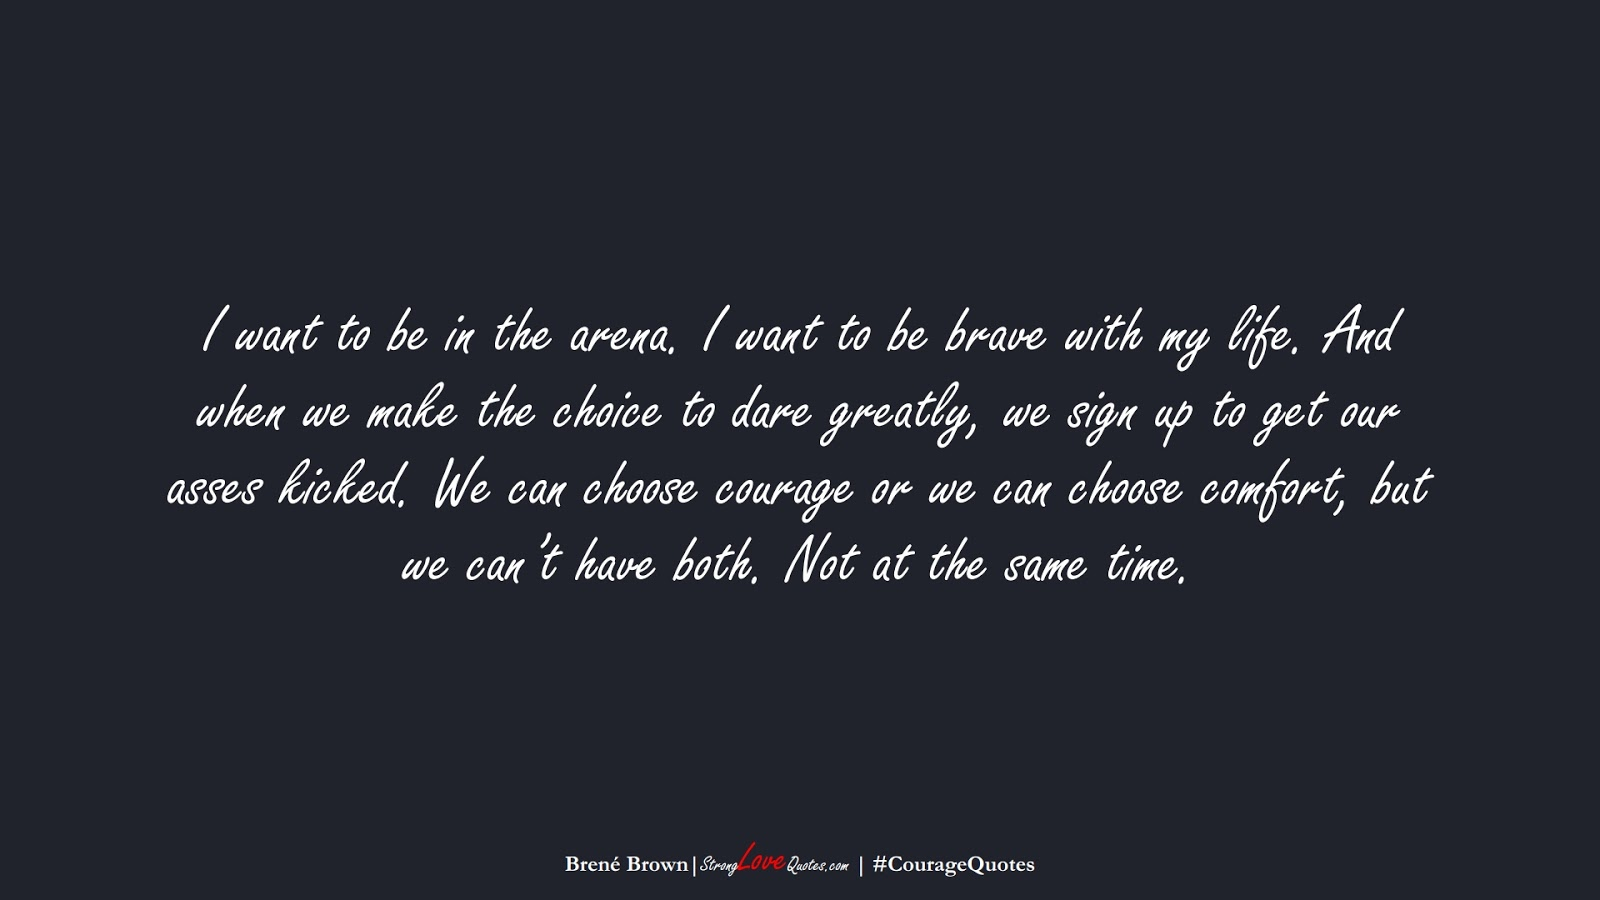 I want to be in the arena. I want to be brave with my life. And when we make the choice to dare greatly, we sign up to get our asses kicked. We can choose courage or we can choose comfort, but we can't have both. Not at the same time. (Brené Brown);  #CourageQuotes